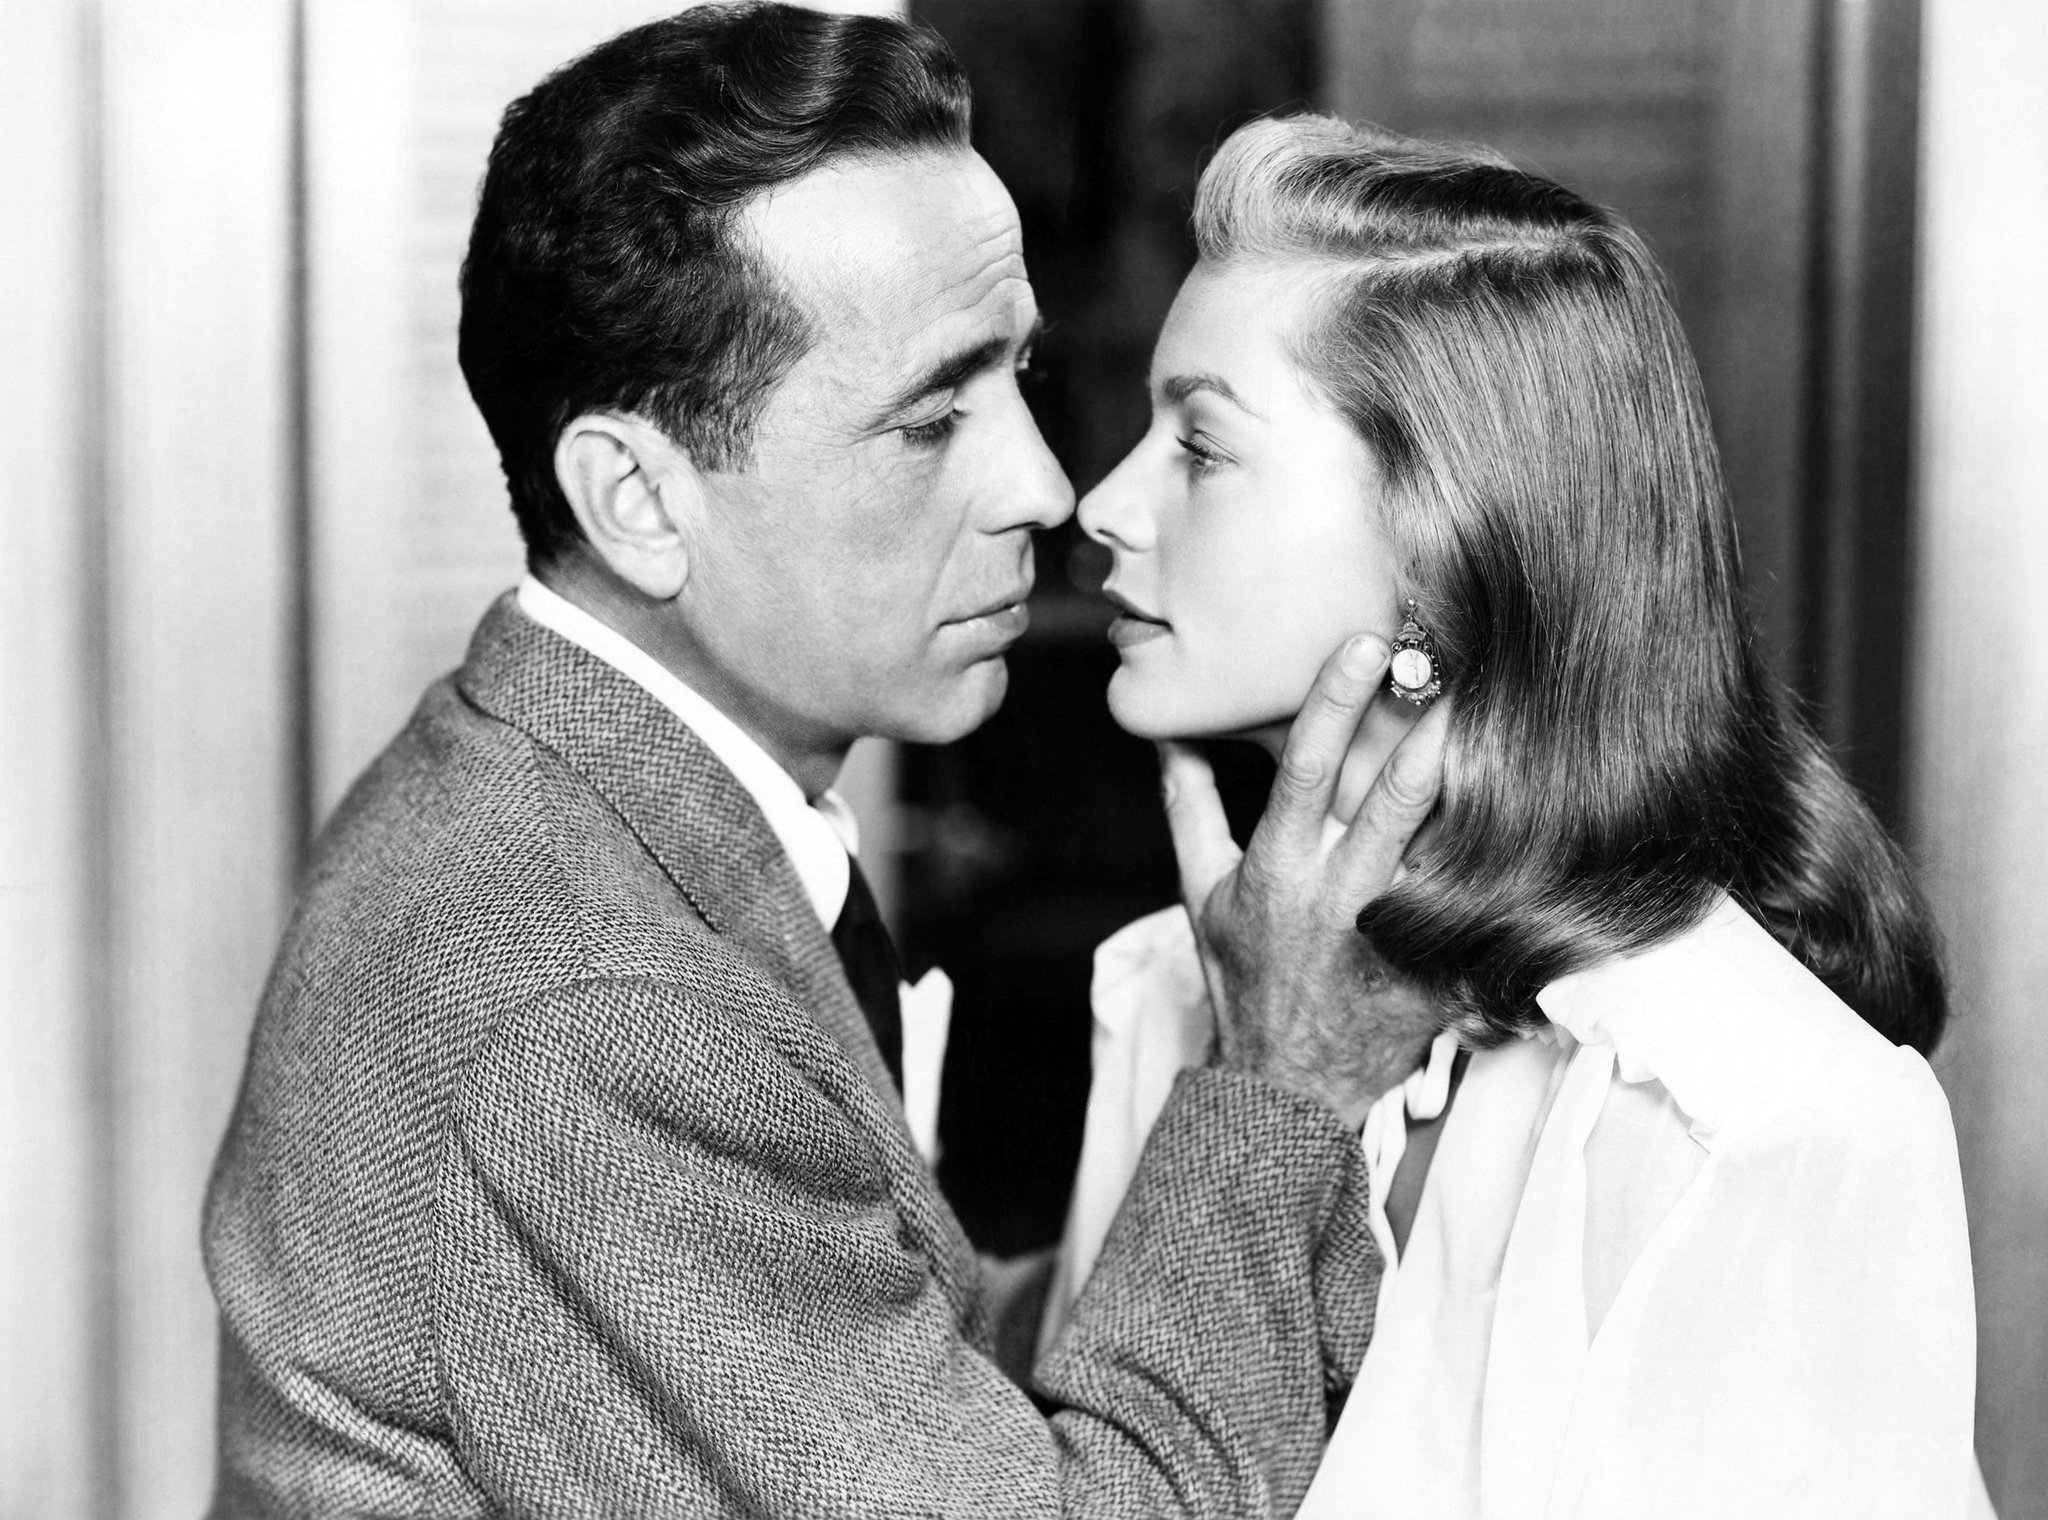 What would 'Laurent Bacall' for encadilar Bogart...? What a femme fatale!! Beautiful and stylish. Happy week end!!! https://t.co/6u6hdDxeBi